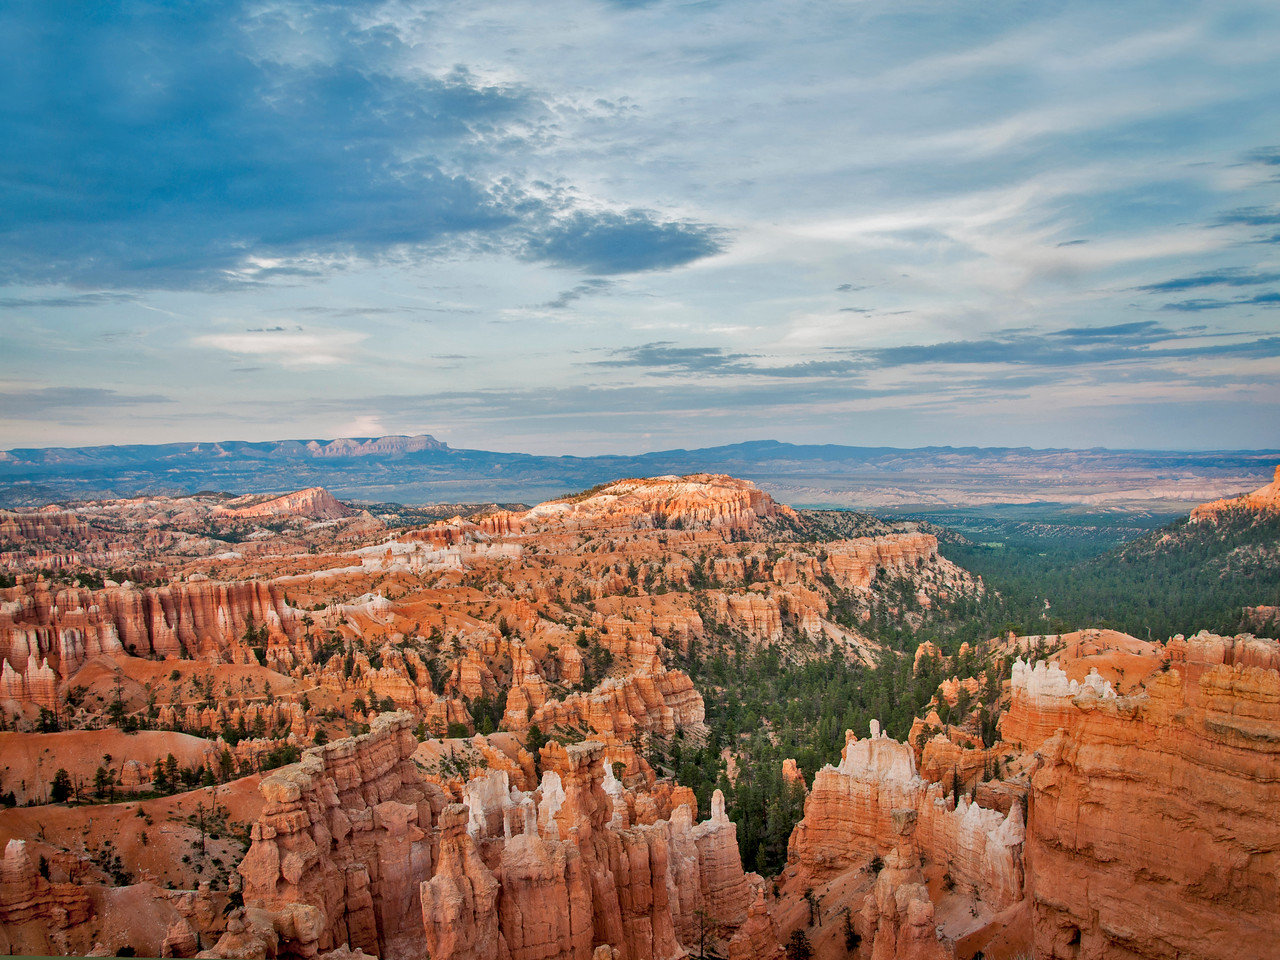 The erosion in Bryce Canyon